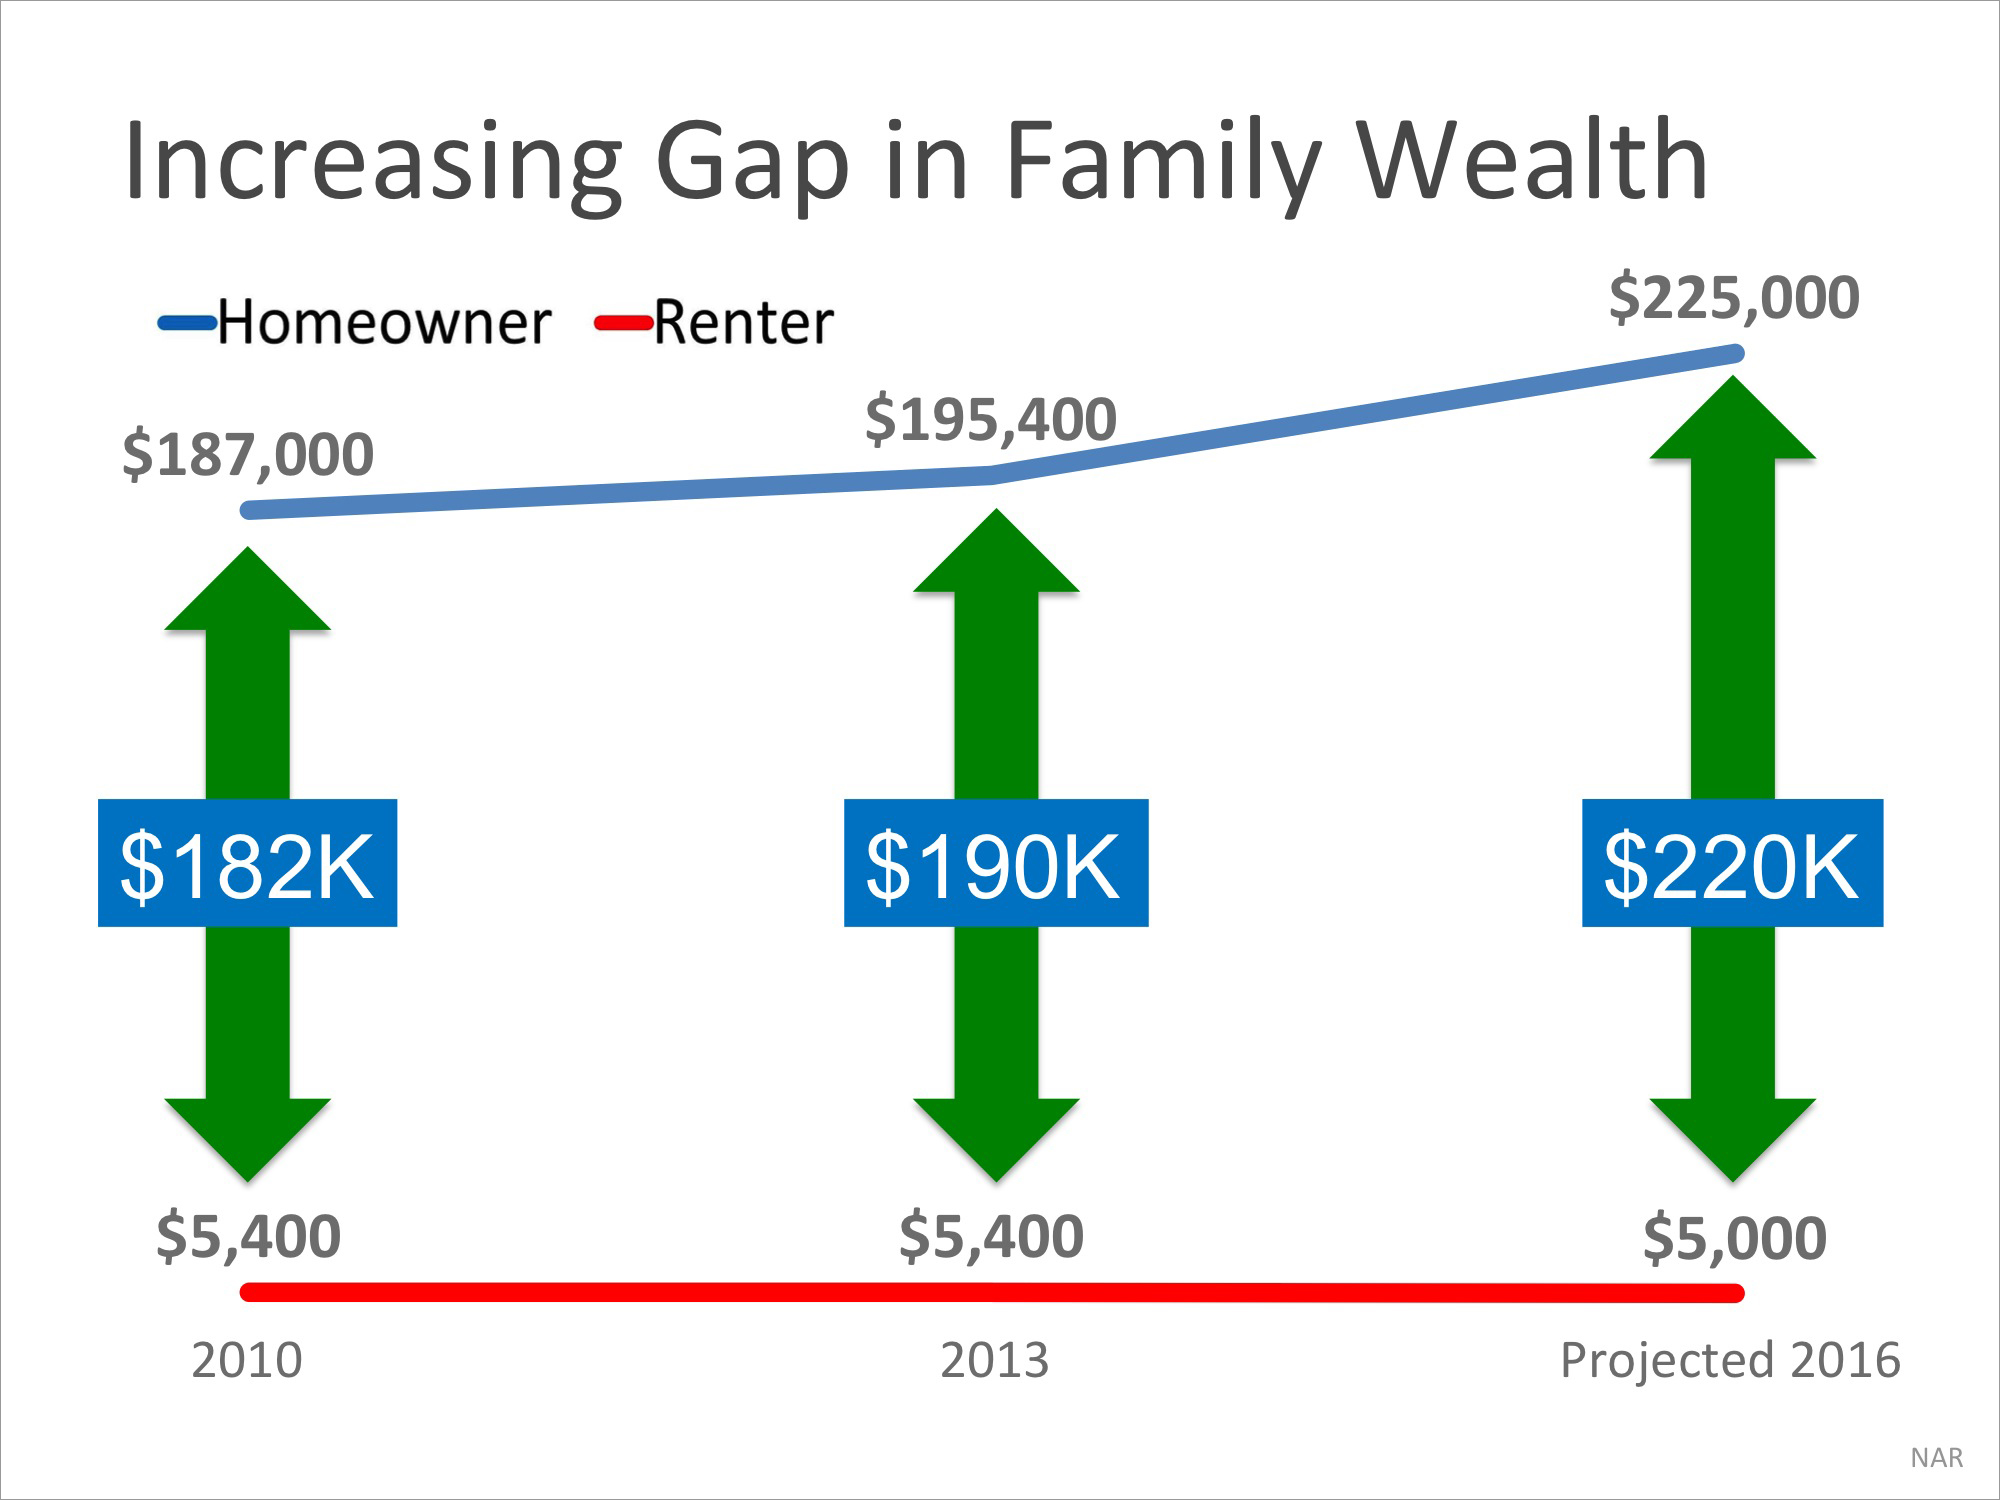 Homeowner's Net Worth Is 45x Greater Than a Renter's   Simplifying The Market